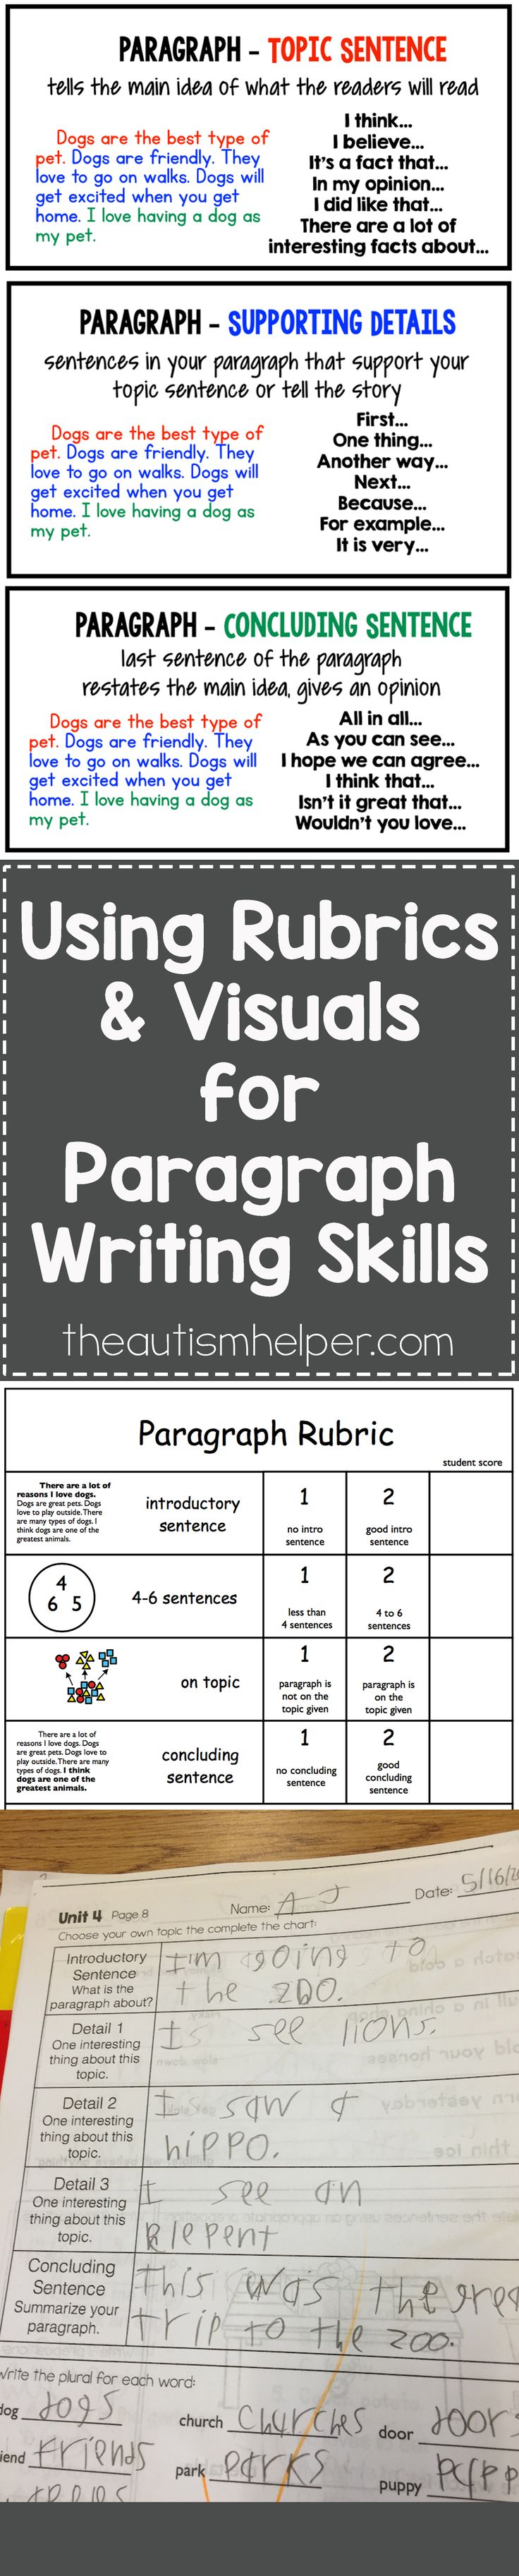 Join our discussion of why rubrics are so helpful when it comes to more complex & multi-faceted academic tasks (like writing a paragraph) on the blog!! From theautismhelper.com #theautismhelper